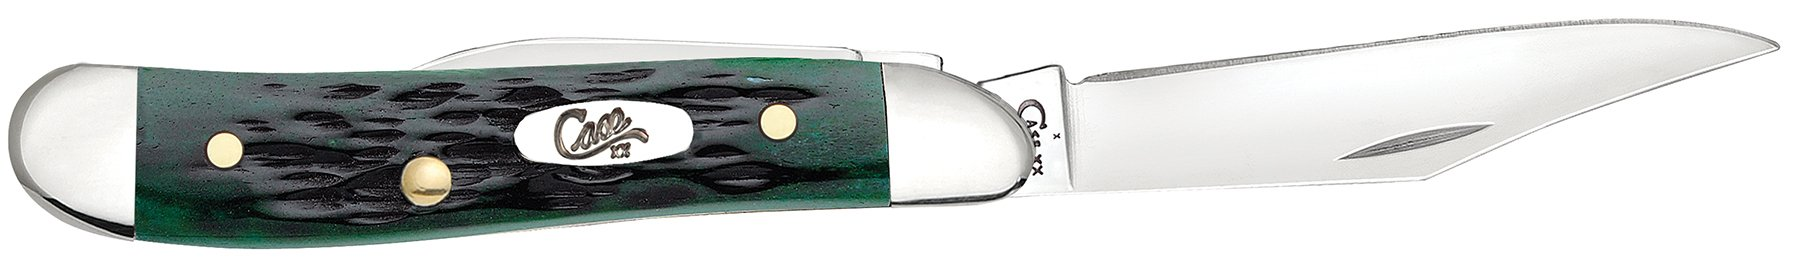 Pocket Worn® Bermuda Green Bone Peach Seed Jig Peanut